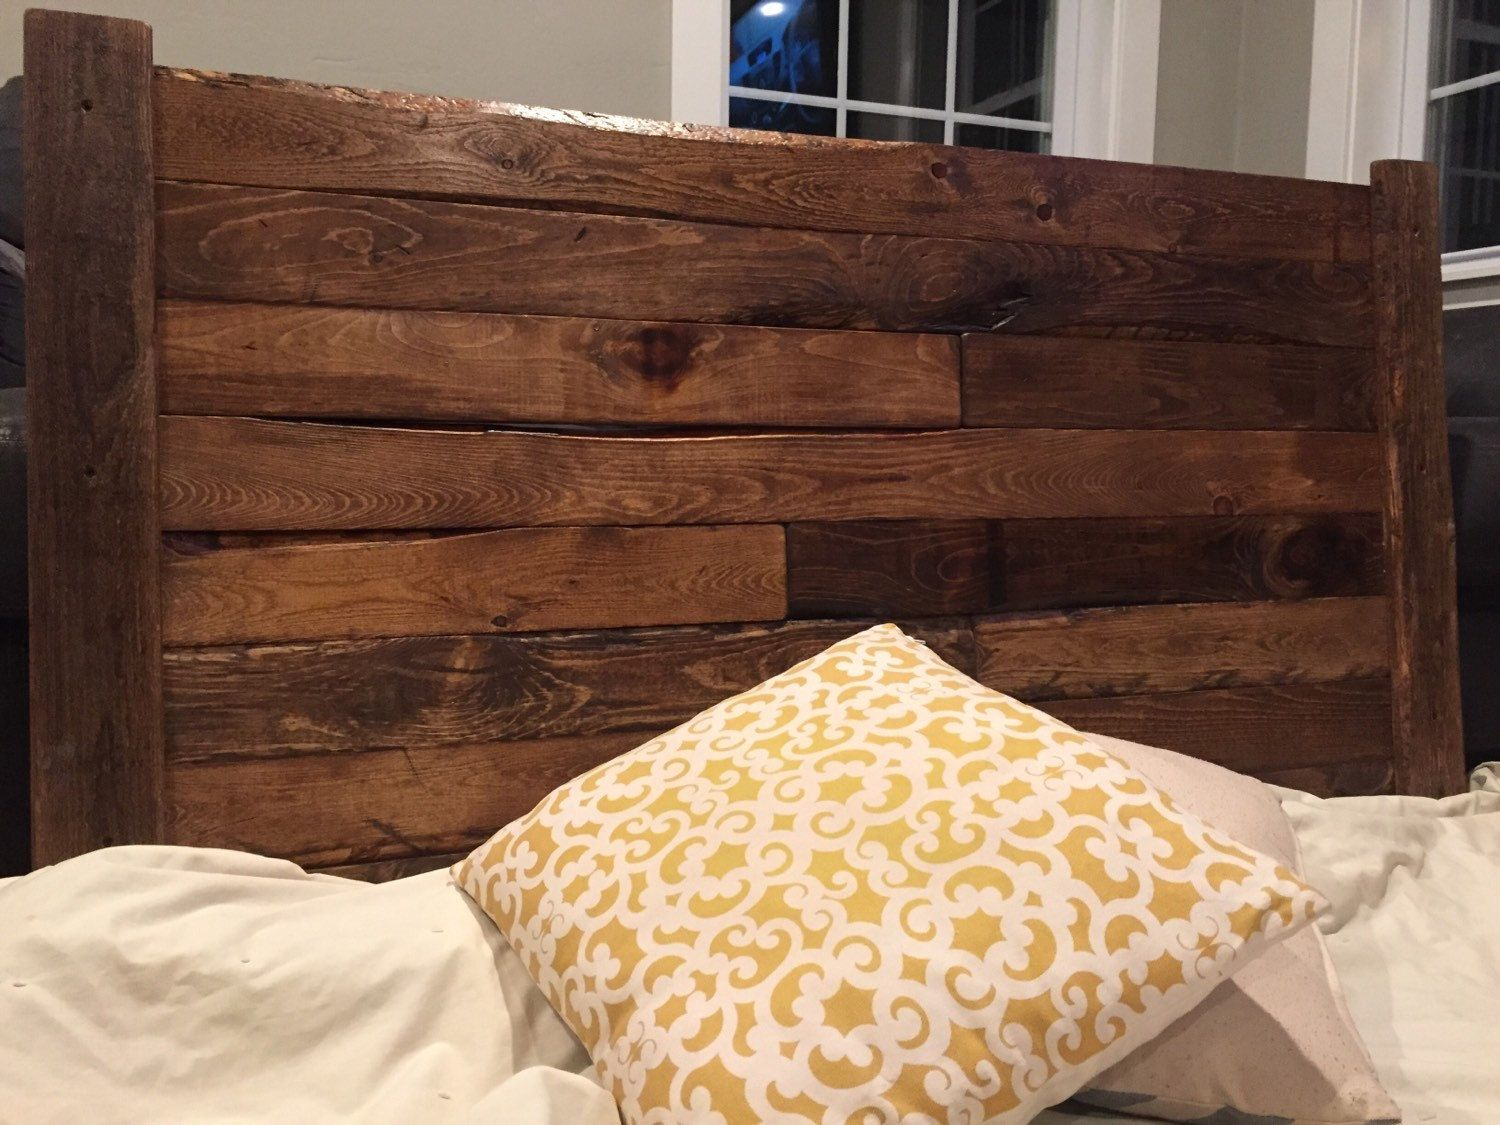 Rustic headboard \'Hank\', King, Queen, Full, Twin wood headboard ...